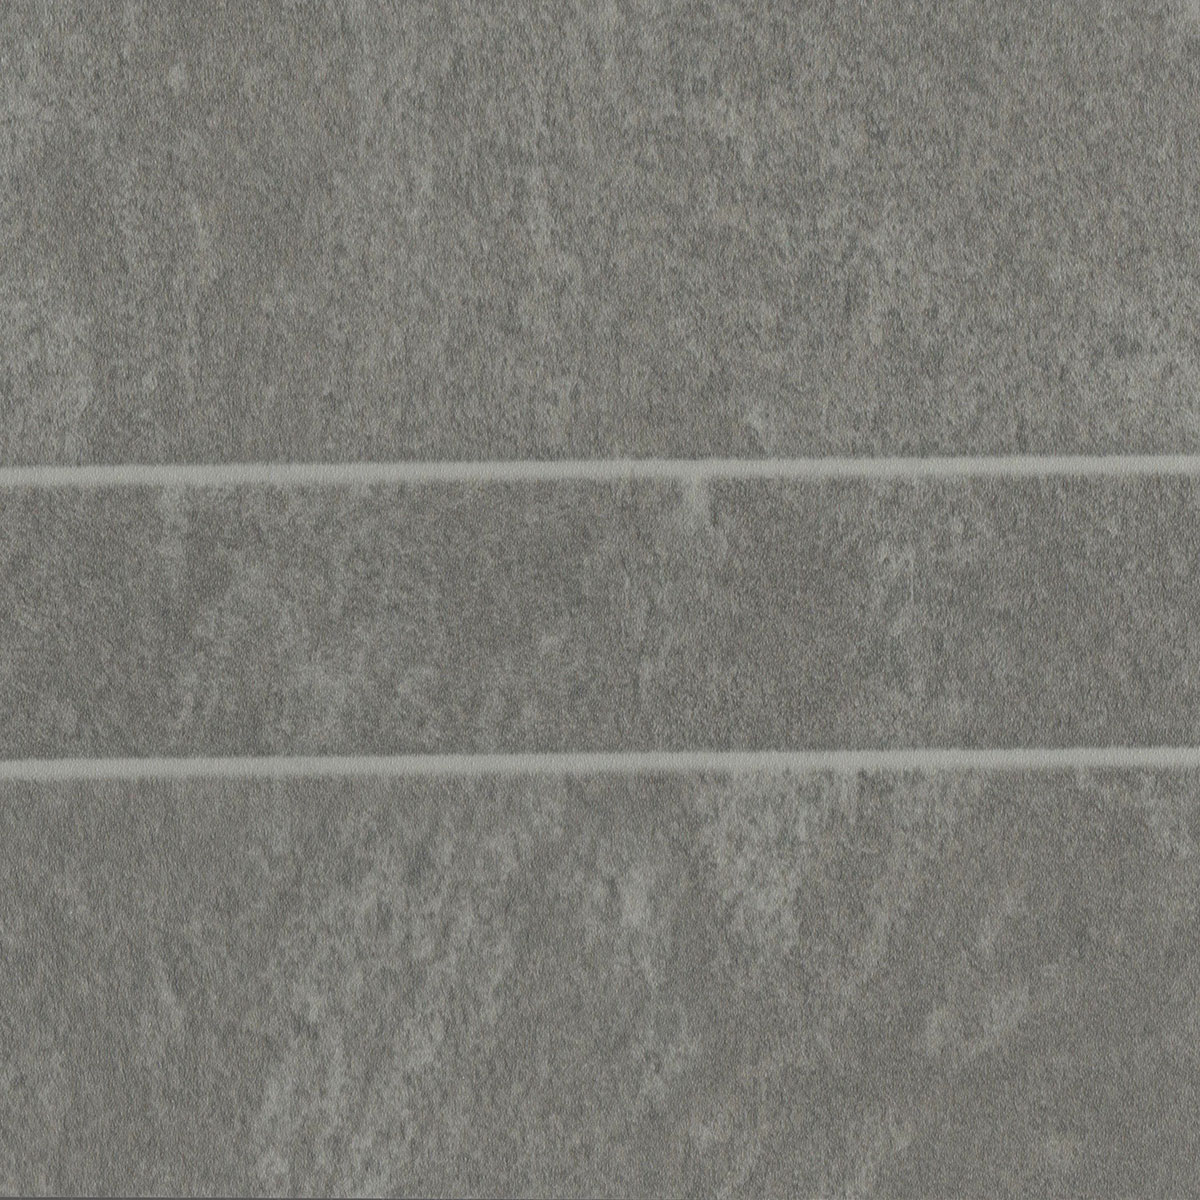 Mb Graphite Standard Tile Bathroom Wall Cladding Aps Wall Panelling